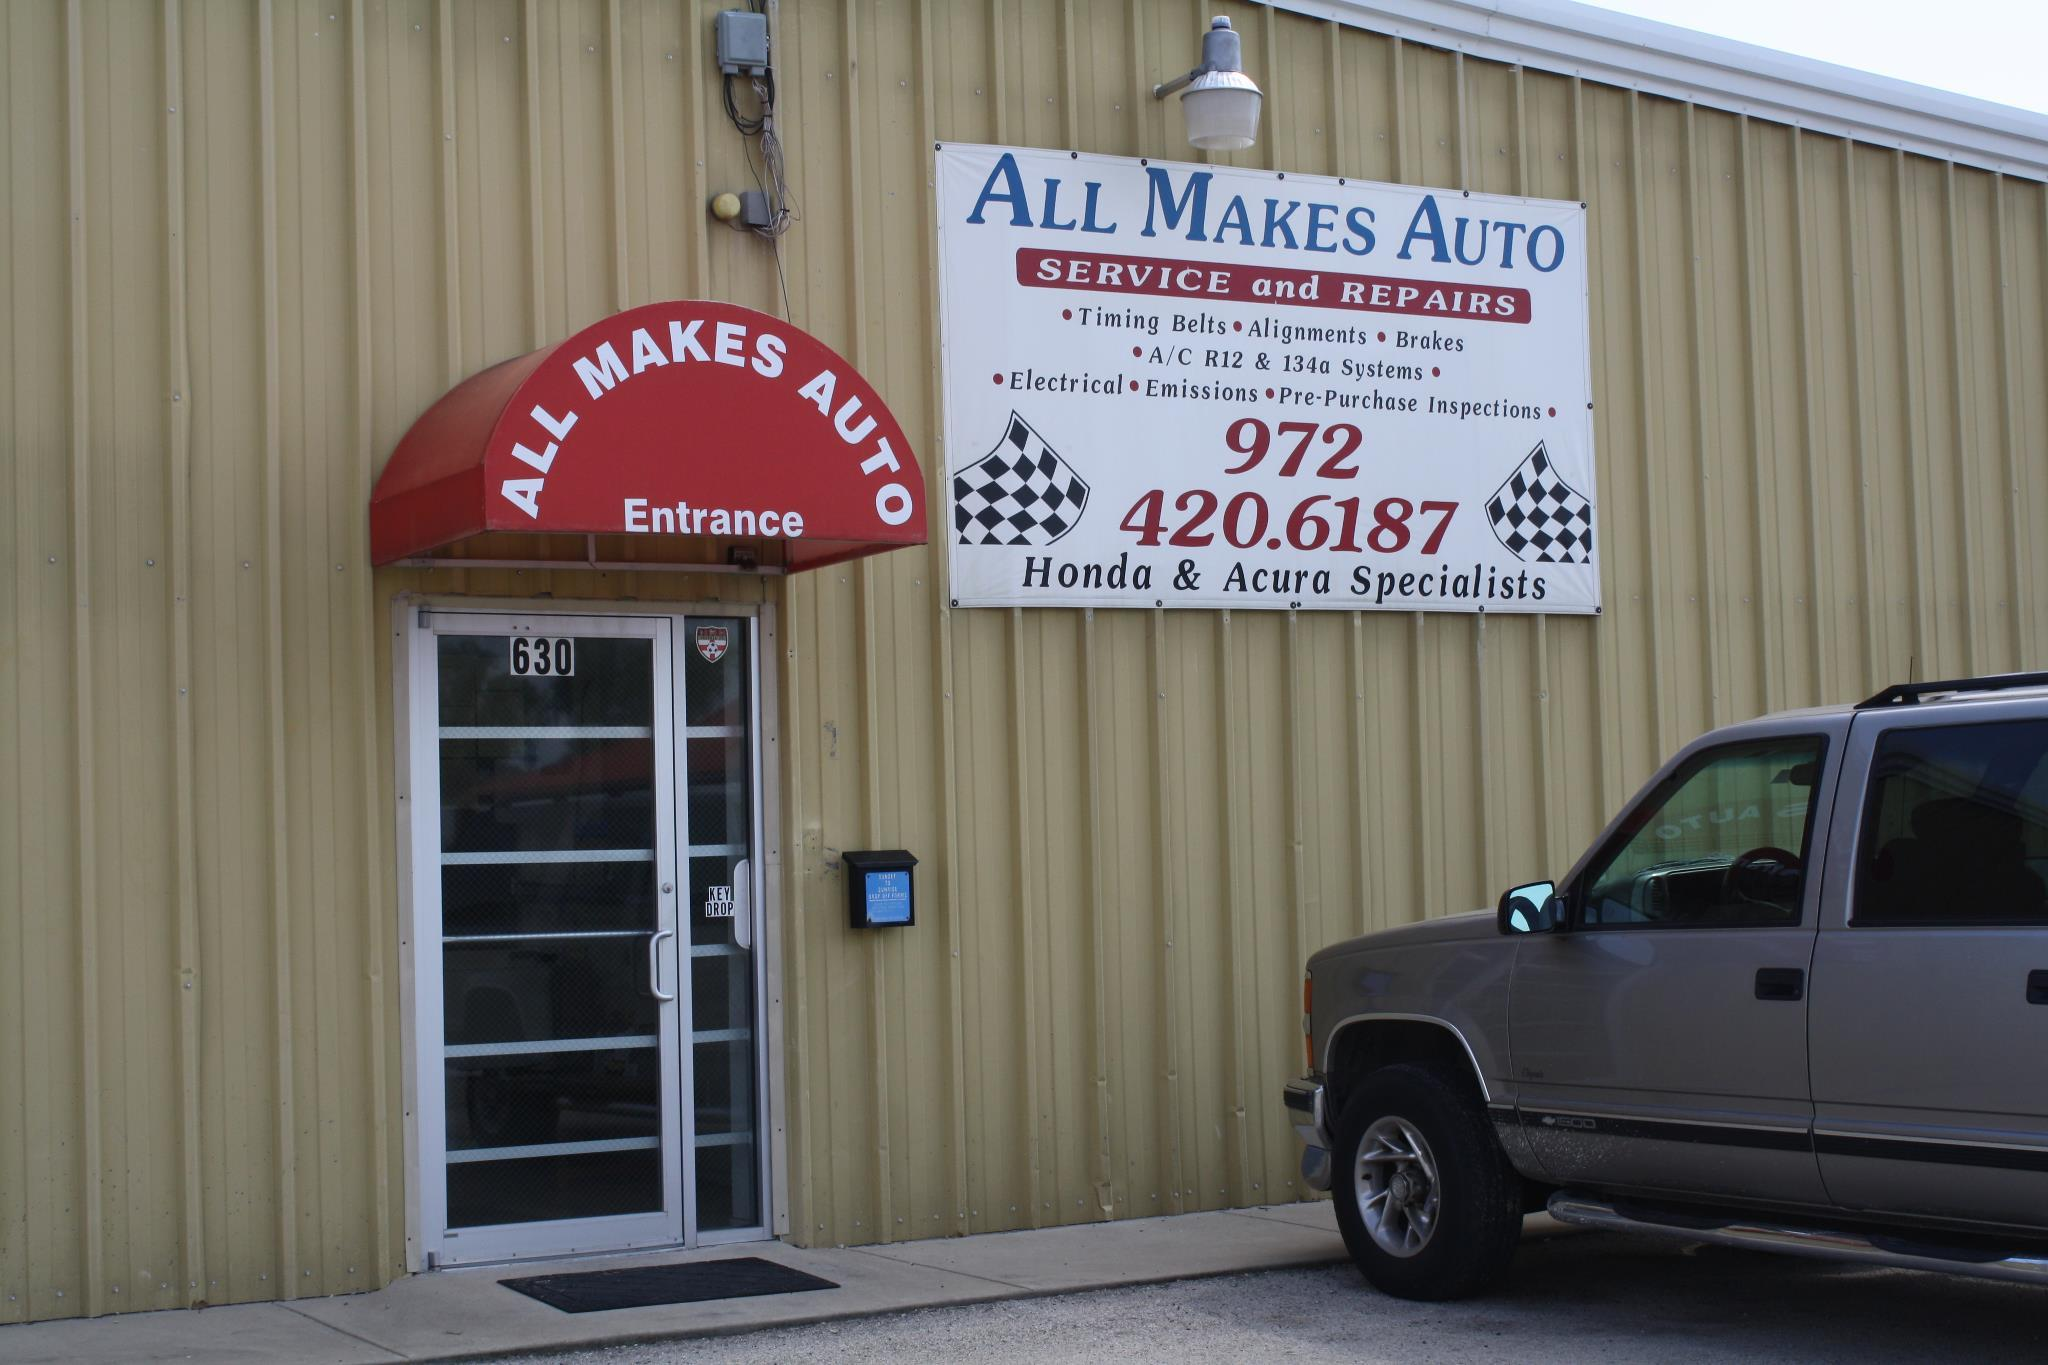 All Makes Any Model Auto Service & Repair image 2